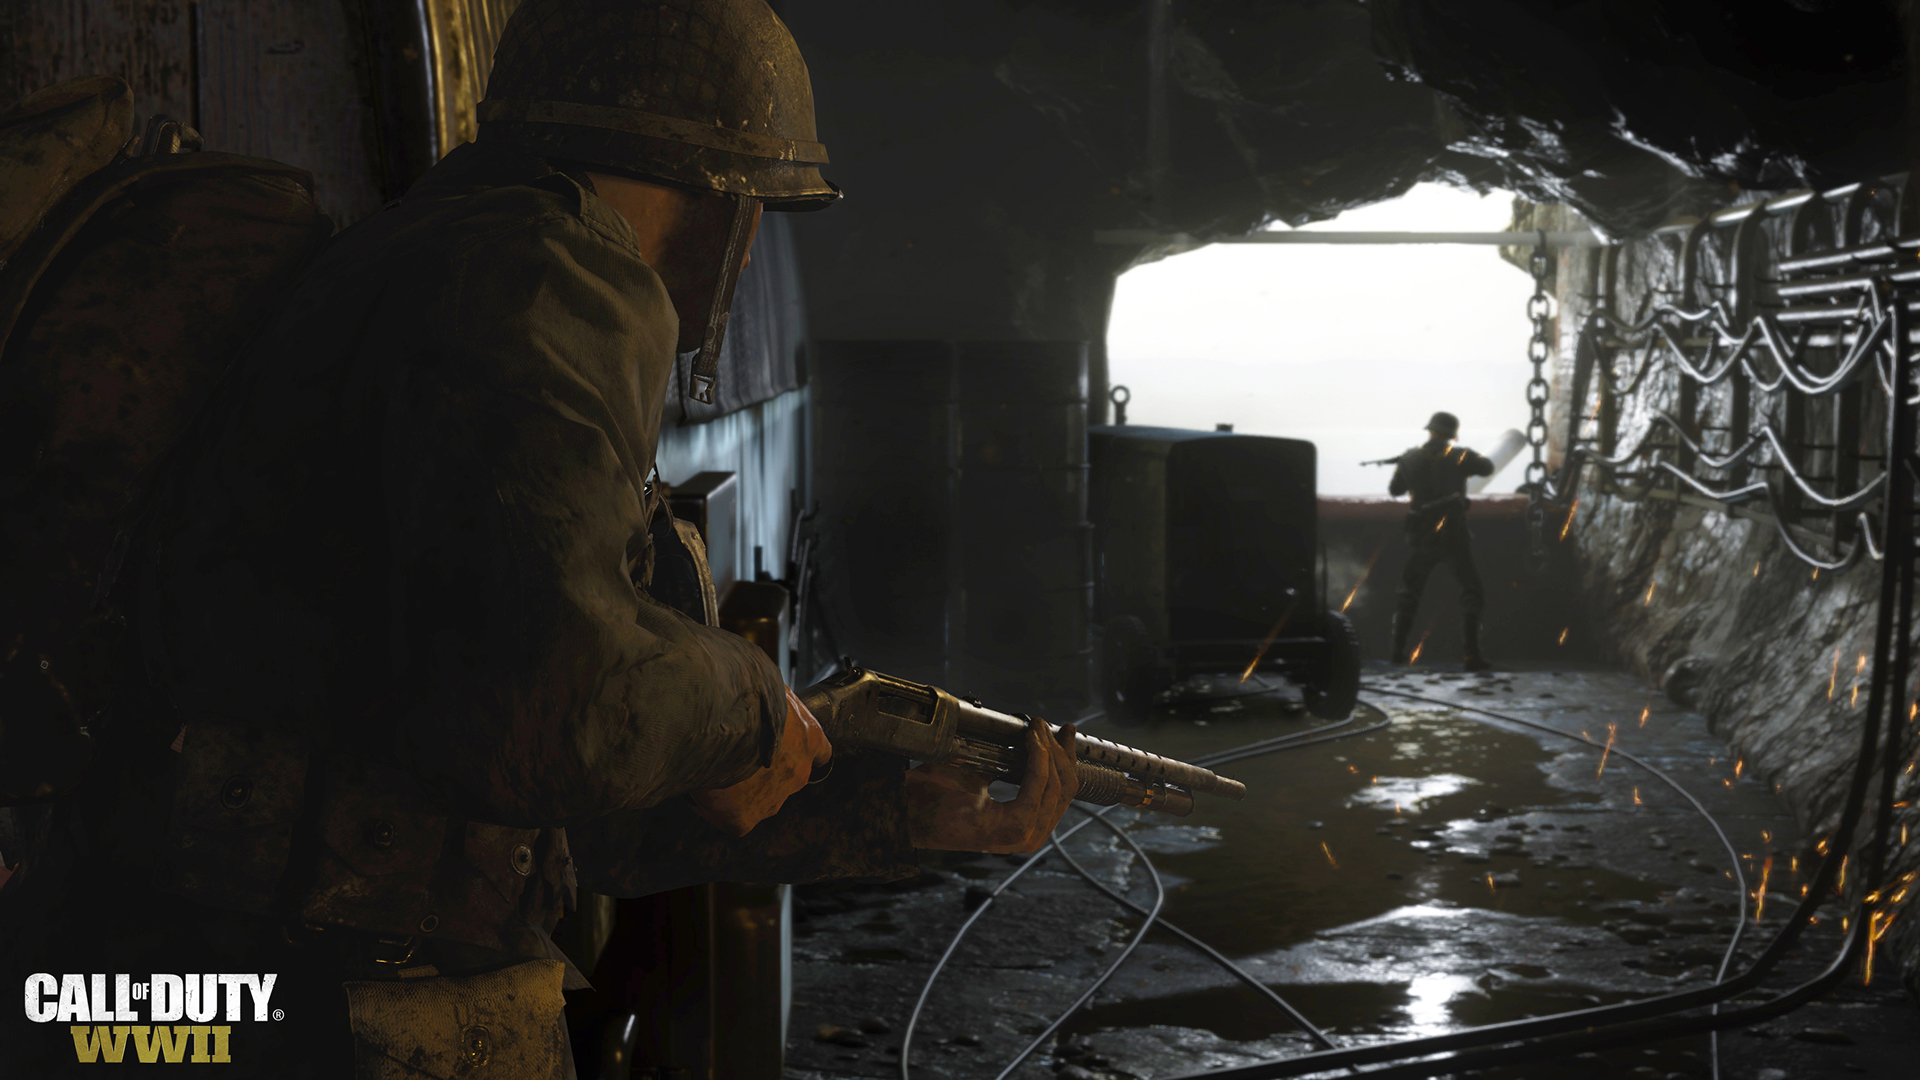 call of duty world war ii - screenshot